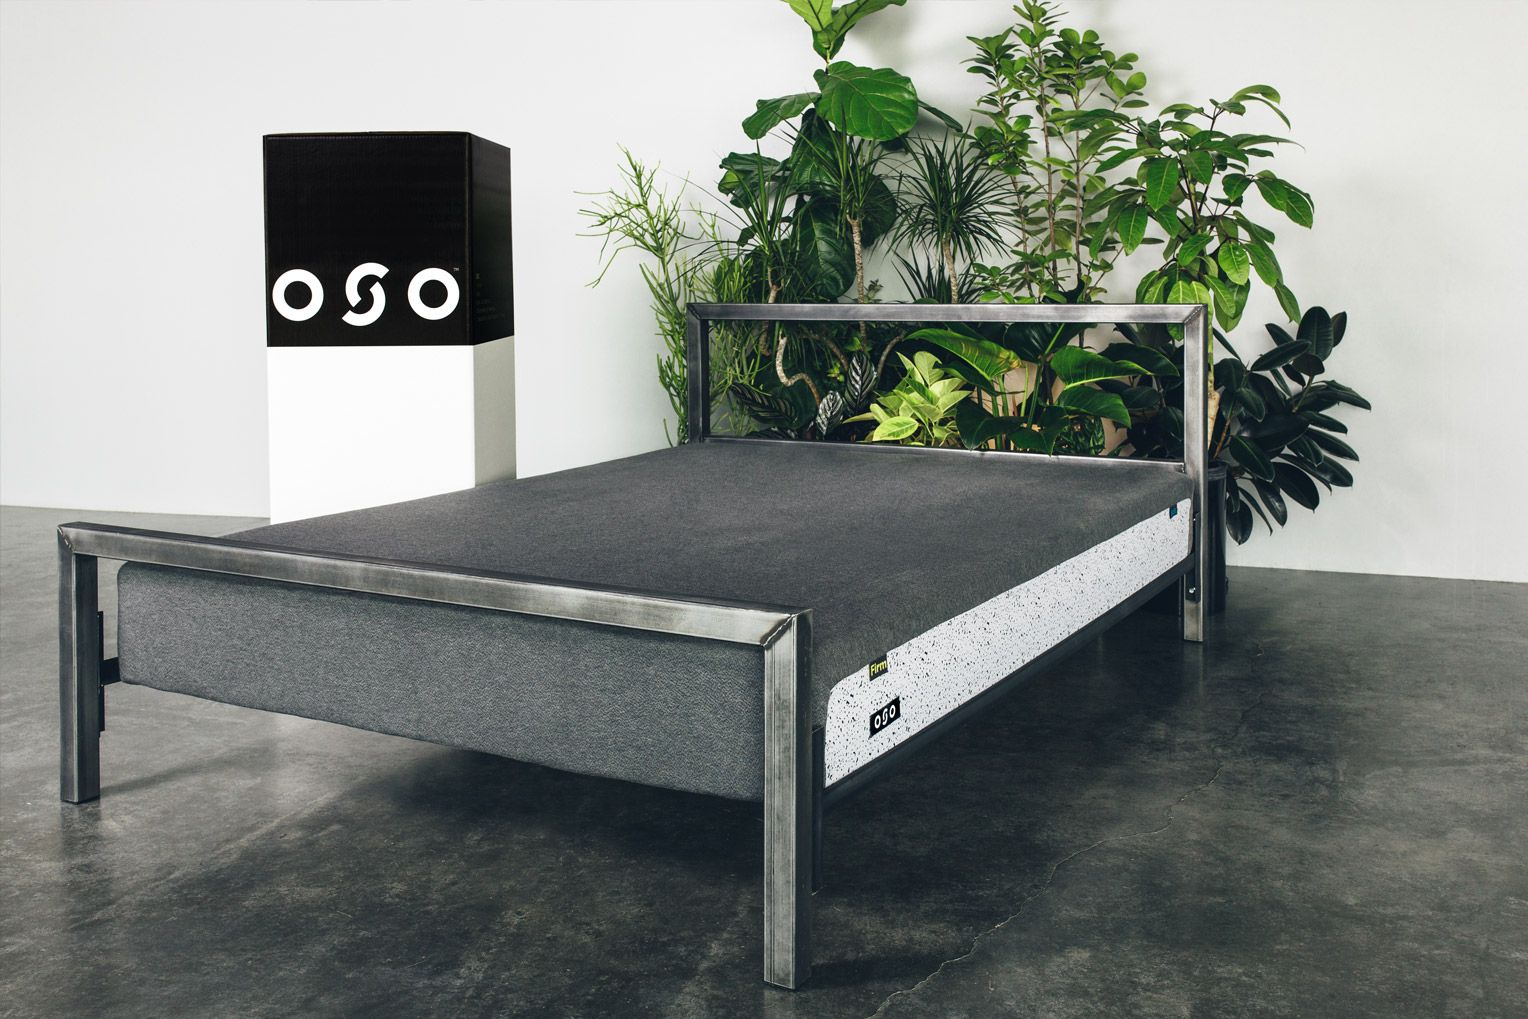 OSO mattress Best mattress, Mattress, Furniture